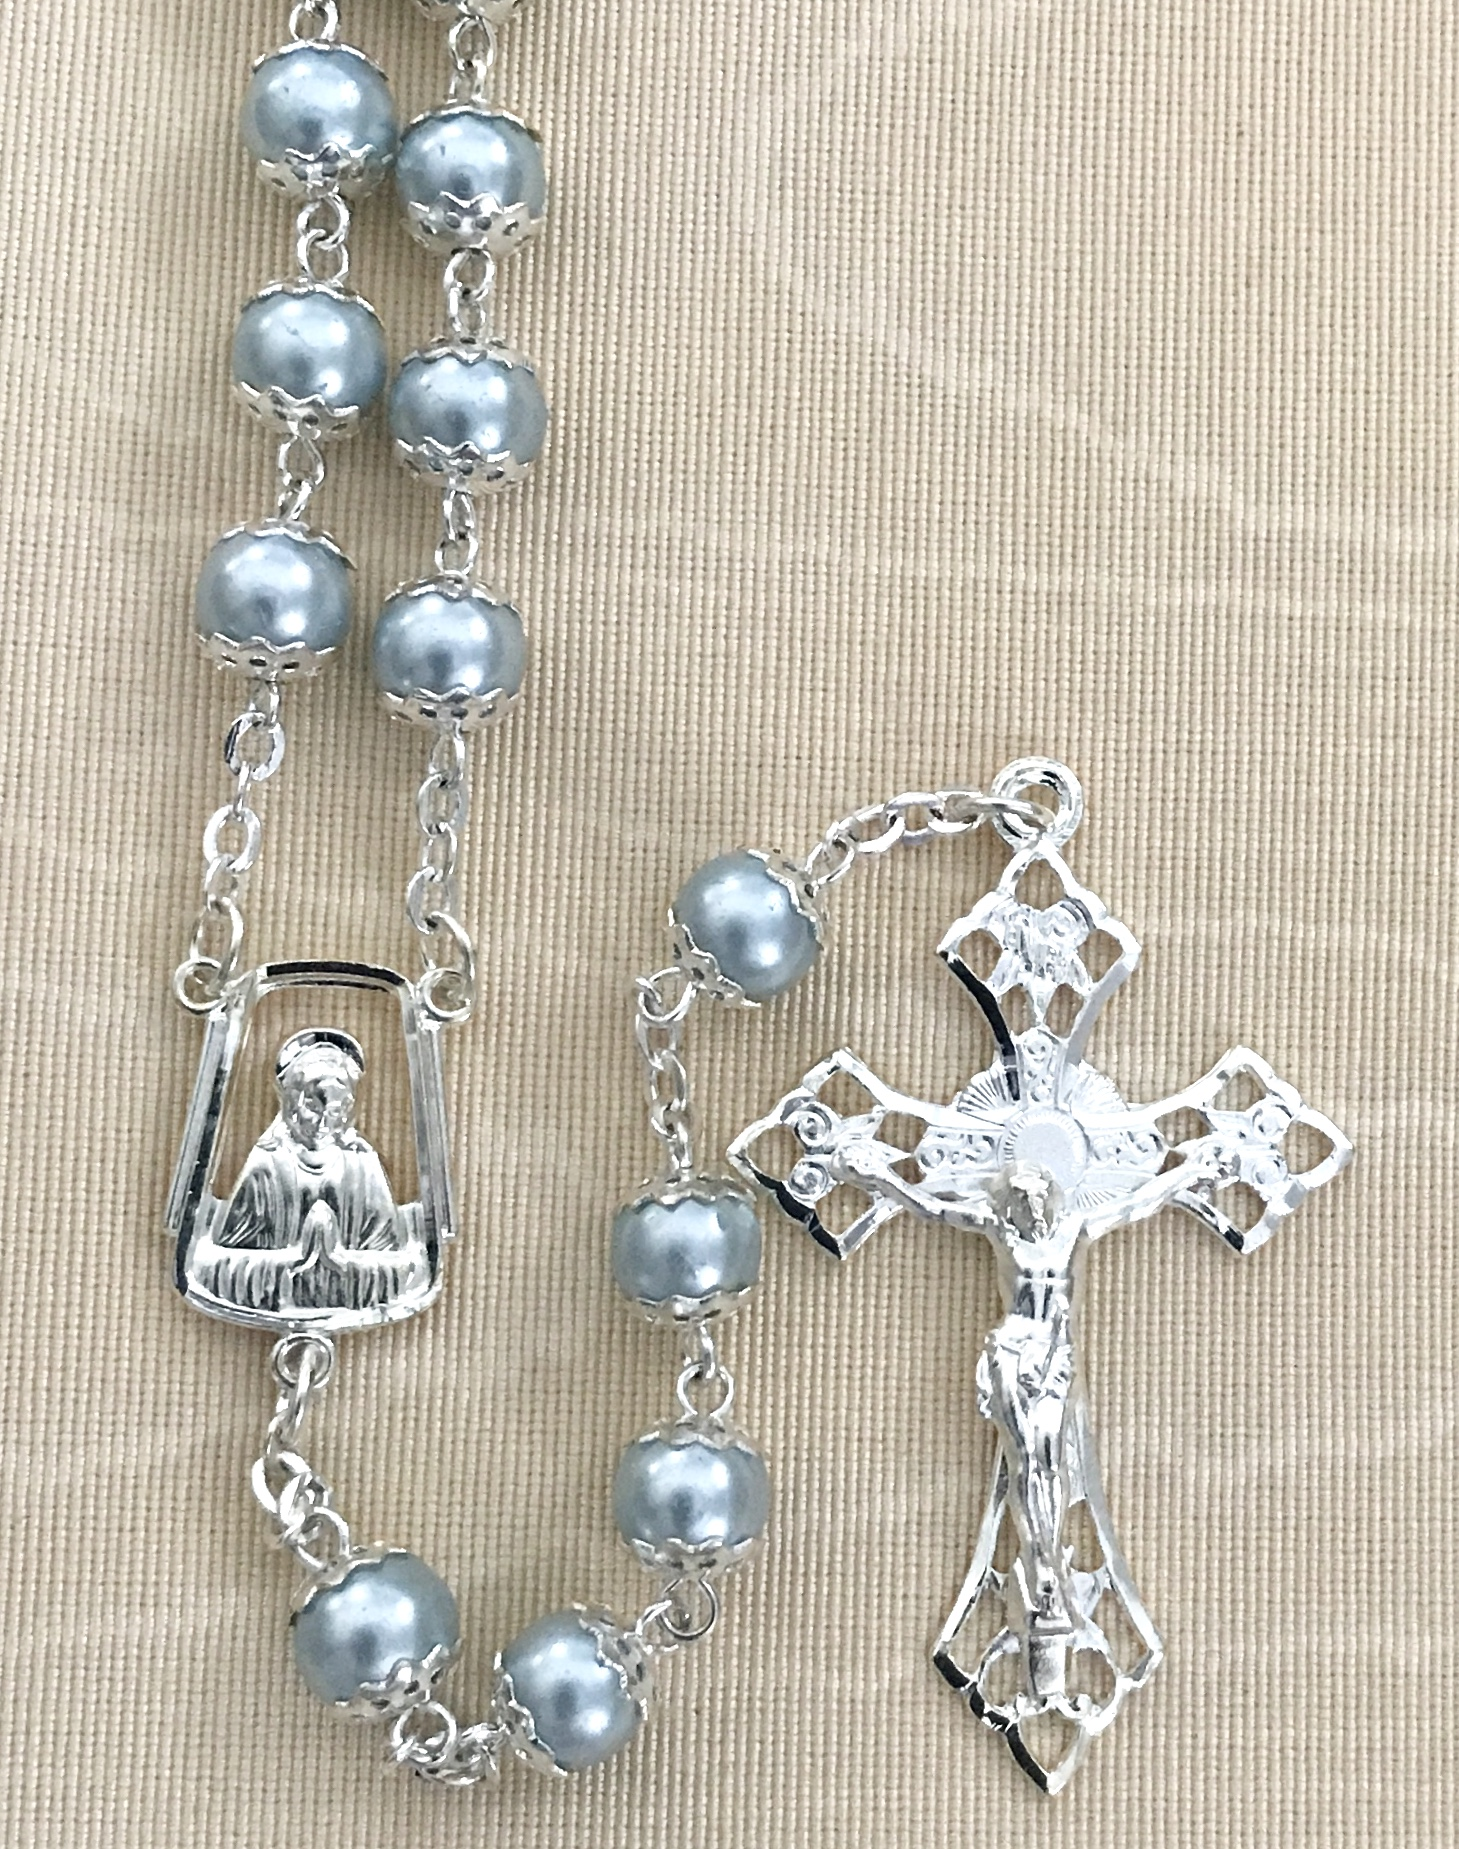 7mm BLUE PEARL DOUBLE CAPPED ROSARY WITH STERLING SILVER PLATED CRUCIFIX AND CENTER GIFT BOXED